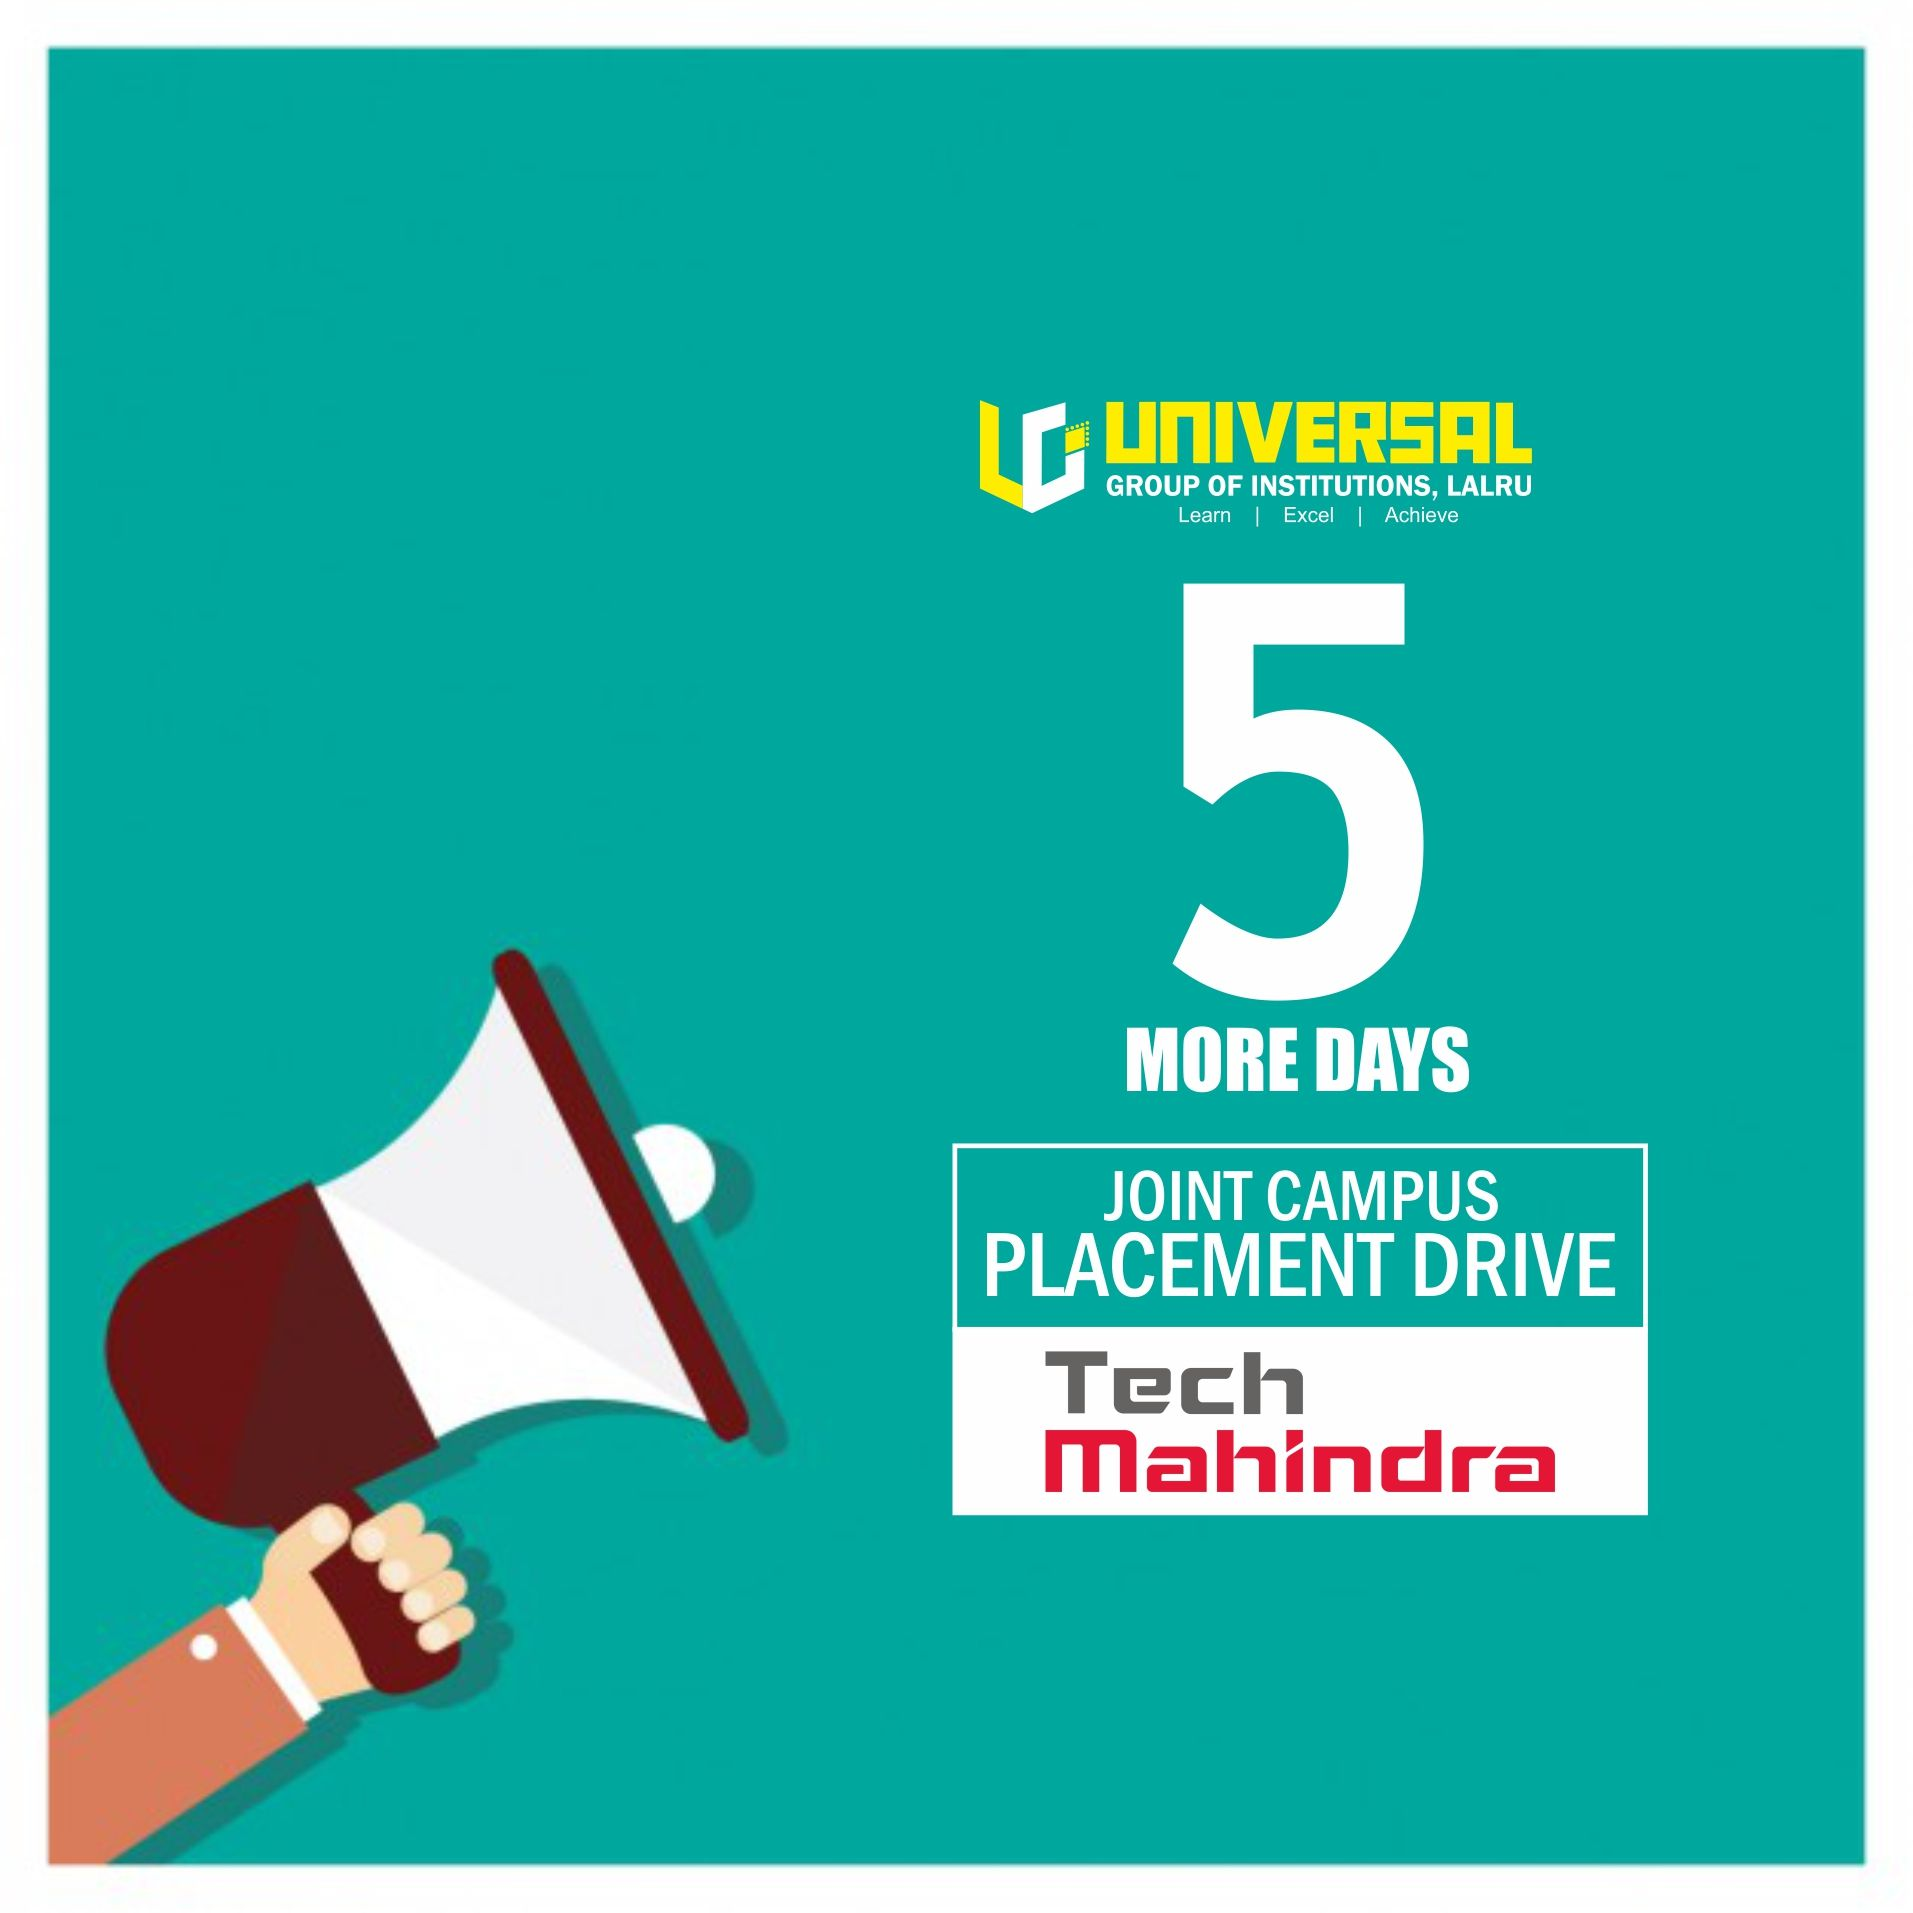 Campus Placement Drive 5 More Days Tech Mahindra